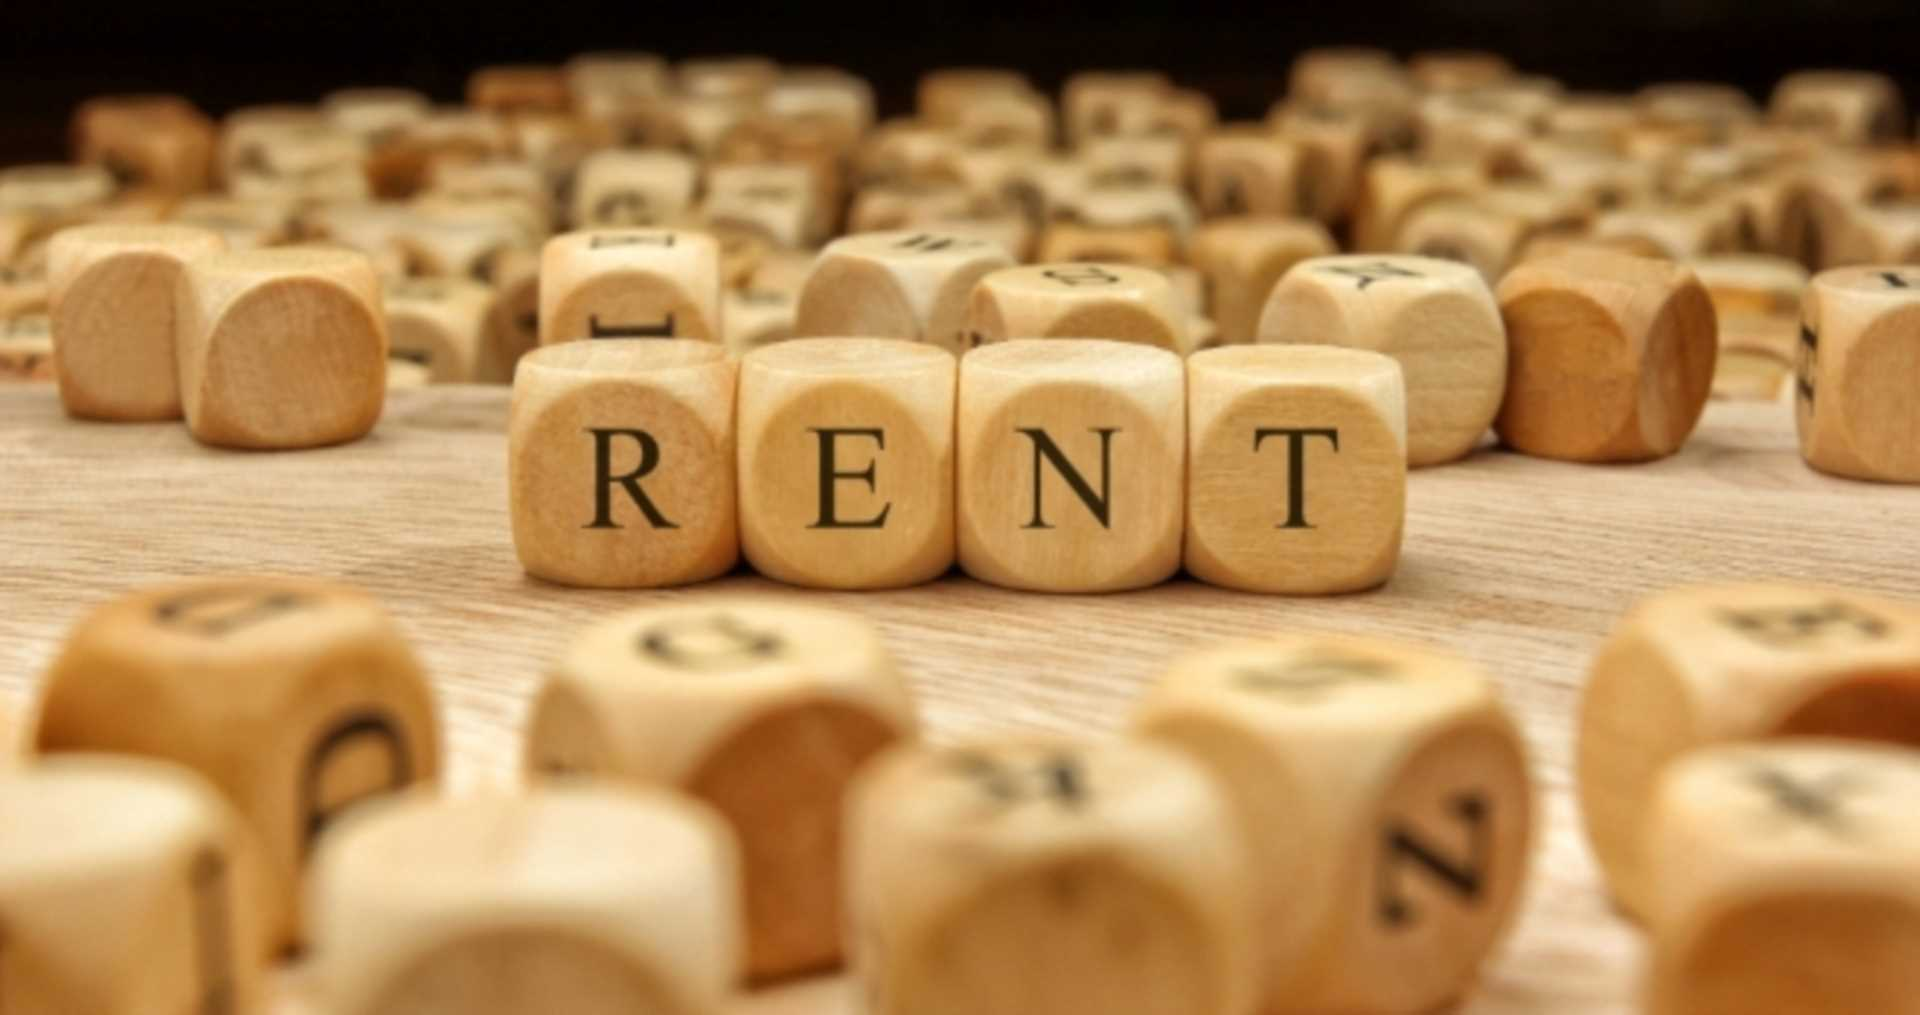 Are government policies going to affect rent prices?